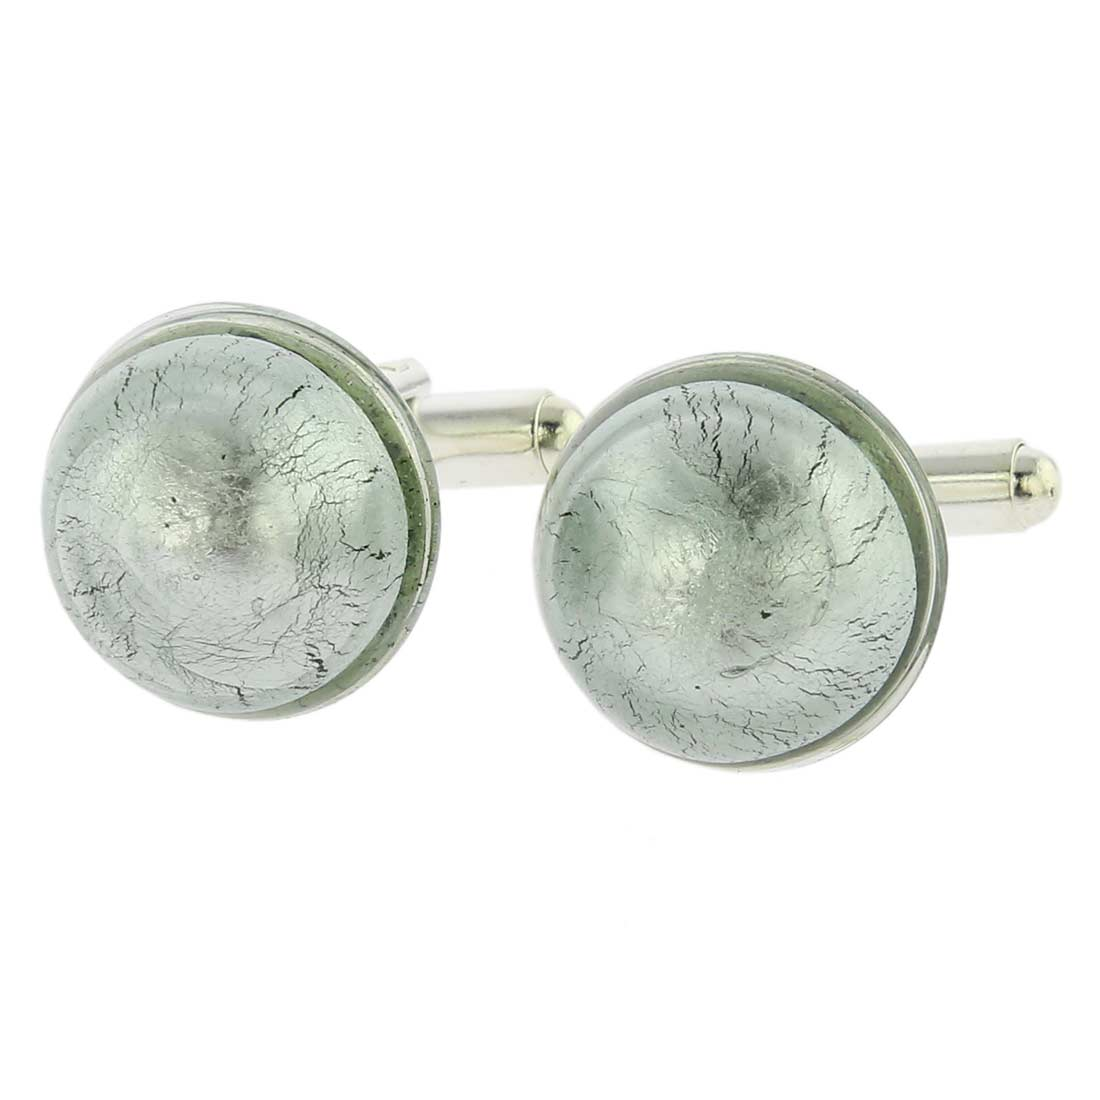 Venetian Dream Cufflinks - Icy Grey